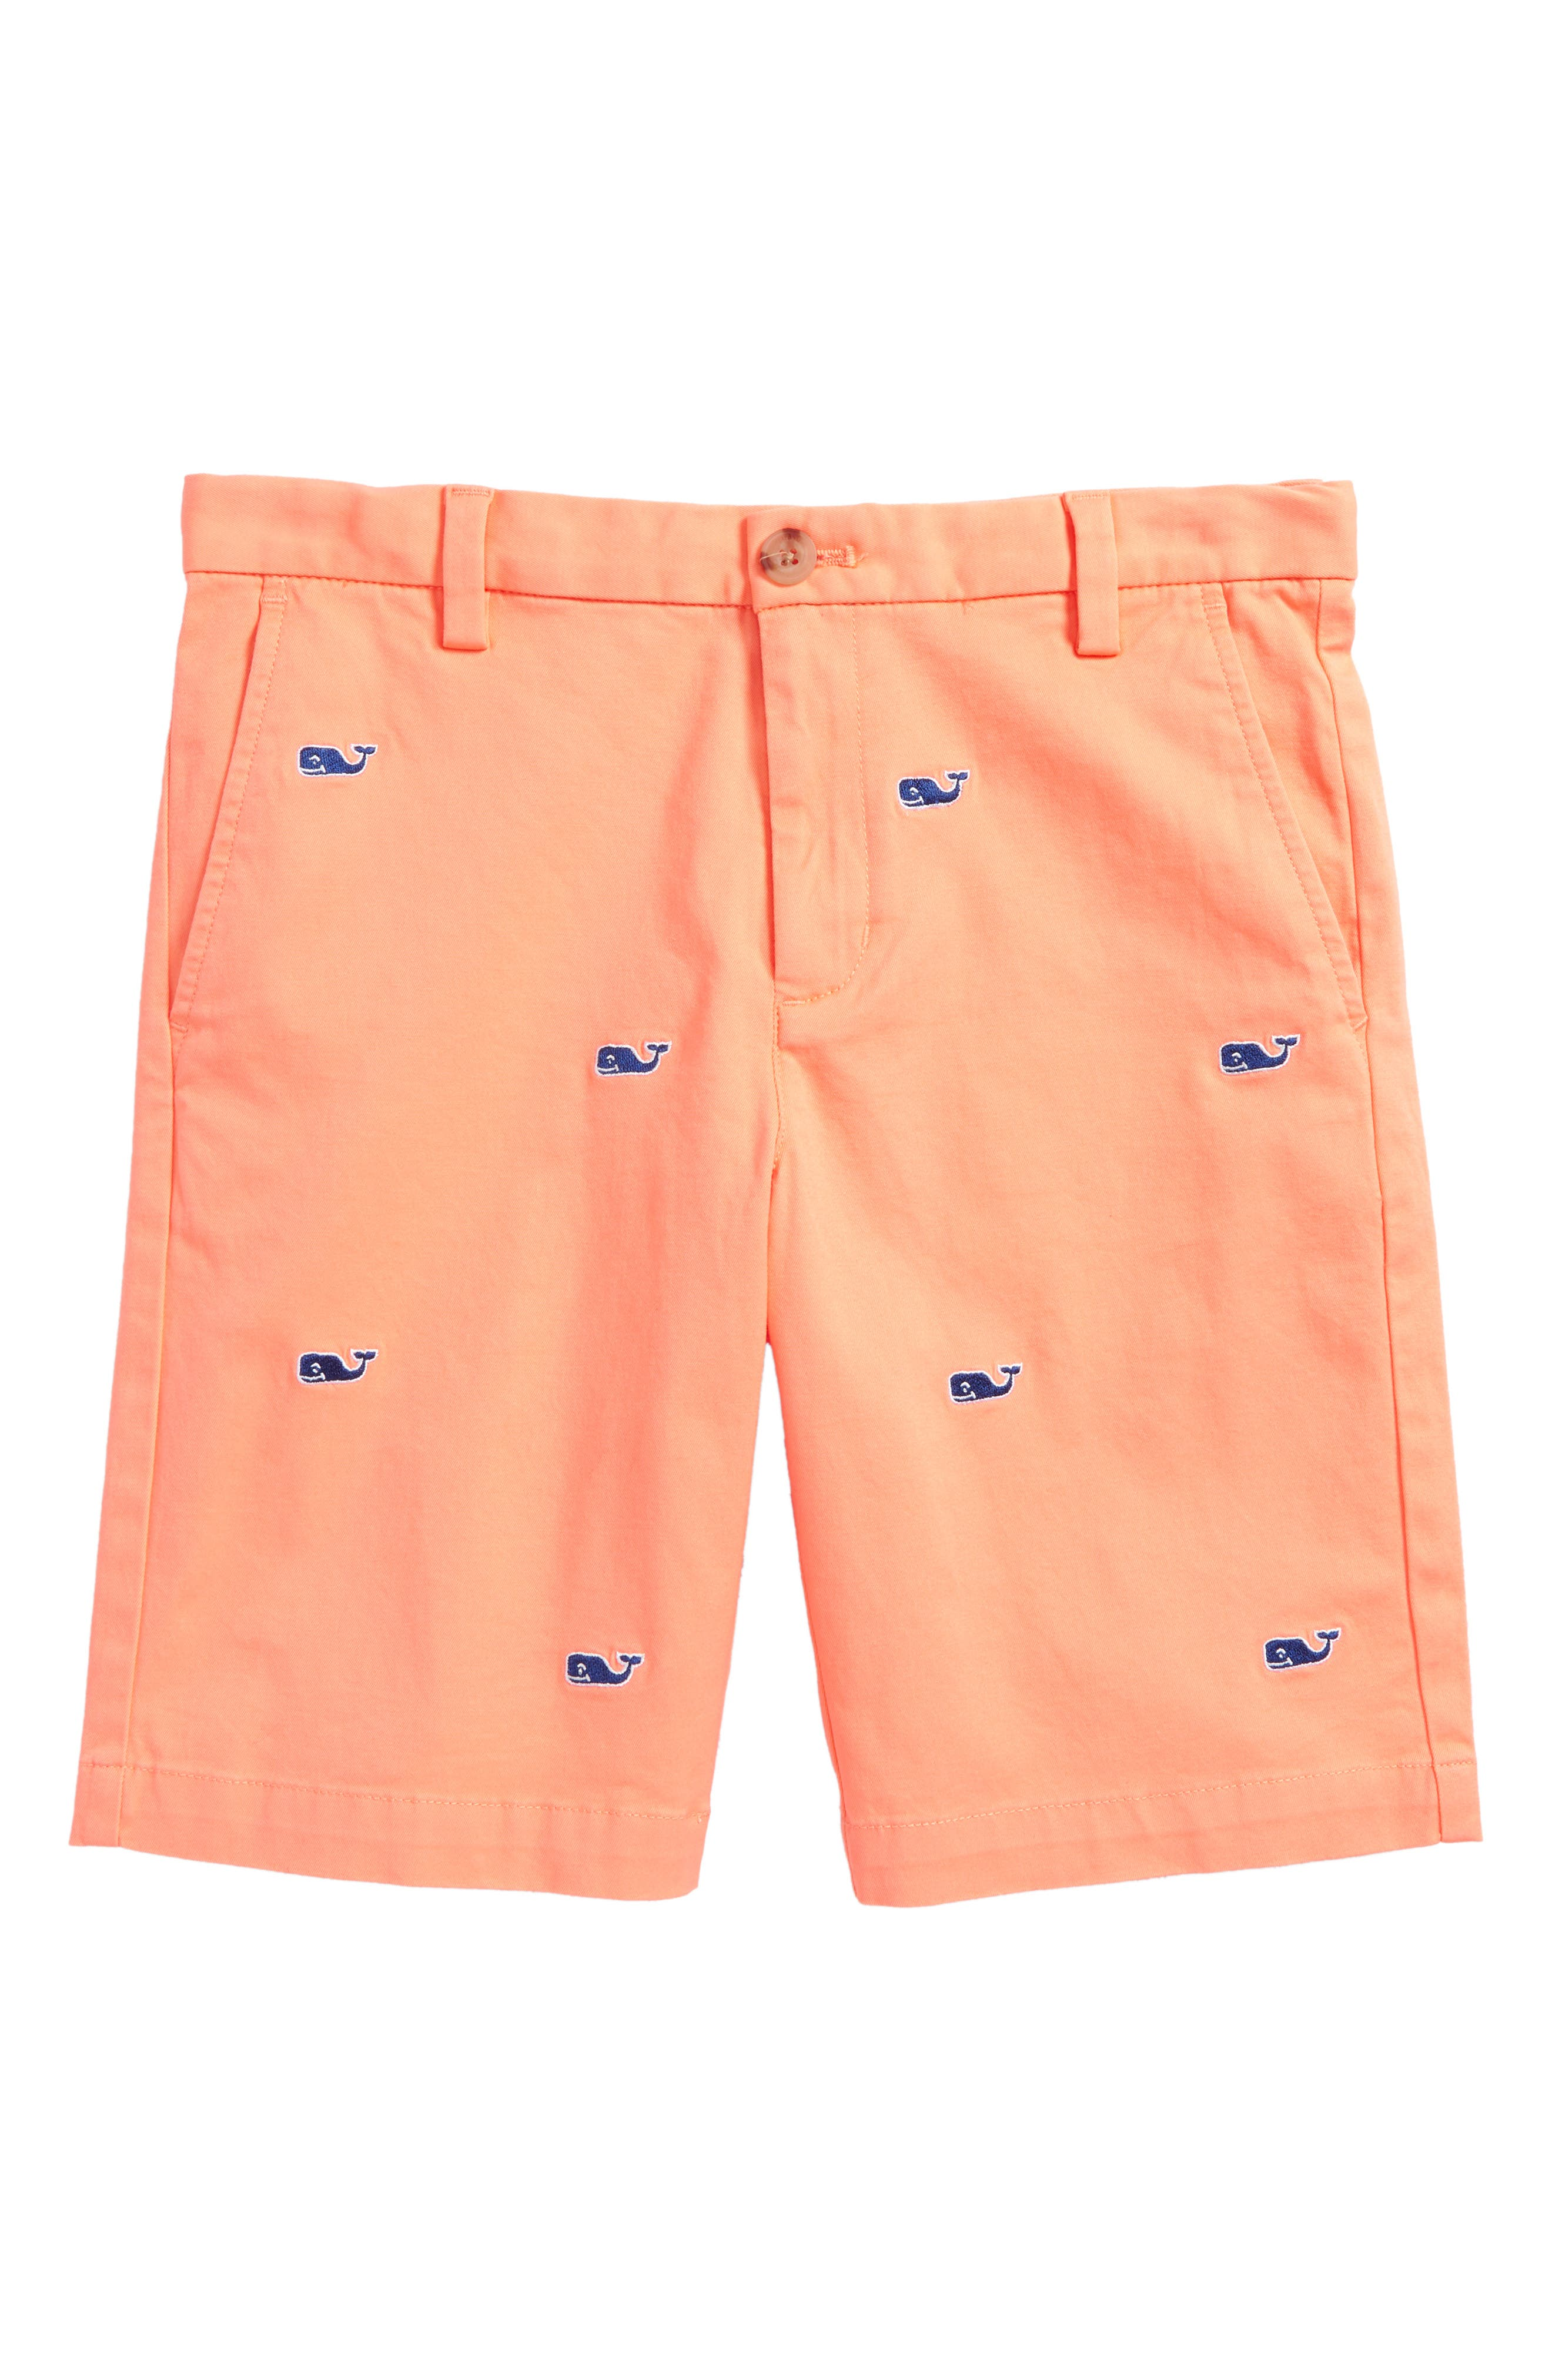 Stretch Breaker Whale Embroidered Shorts,                         Main,                         color, Light Neon Melon